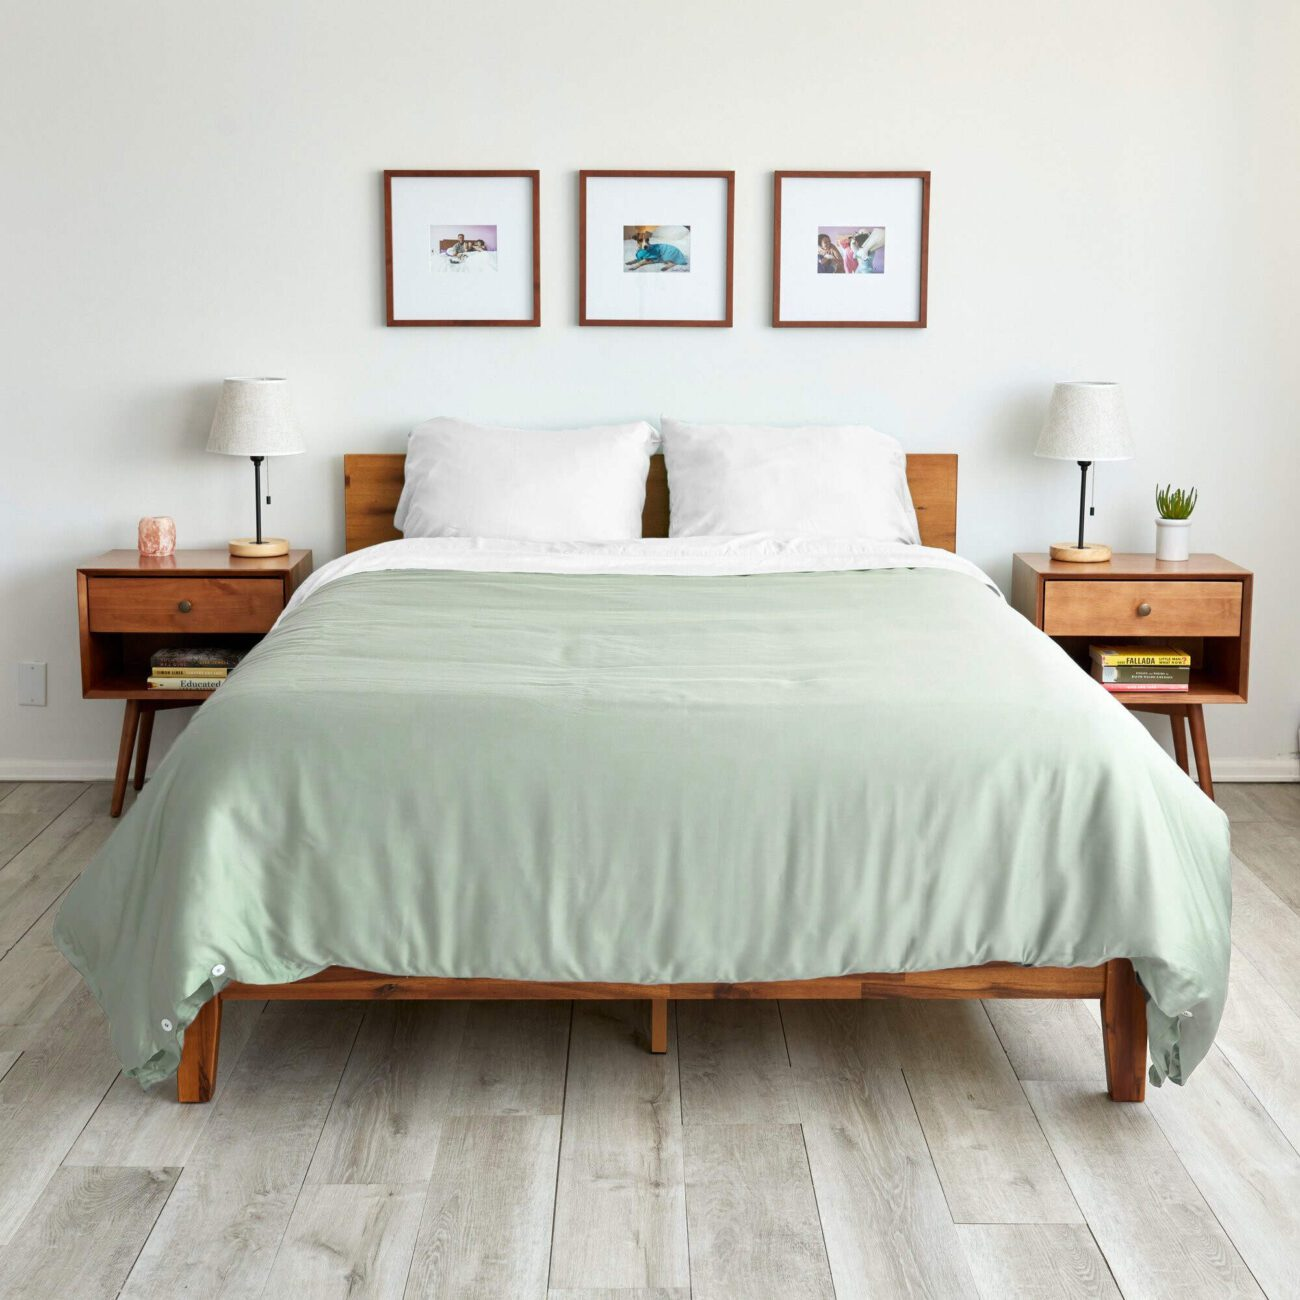 There are so many choices for bedsheets, but getting the wrong fabric can impact your sleep quality. Sleep comfortably with the perfect bedsheet for you.